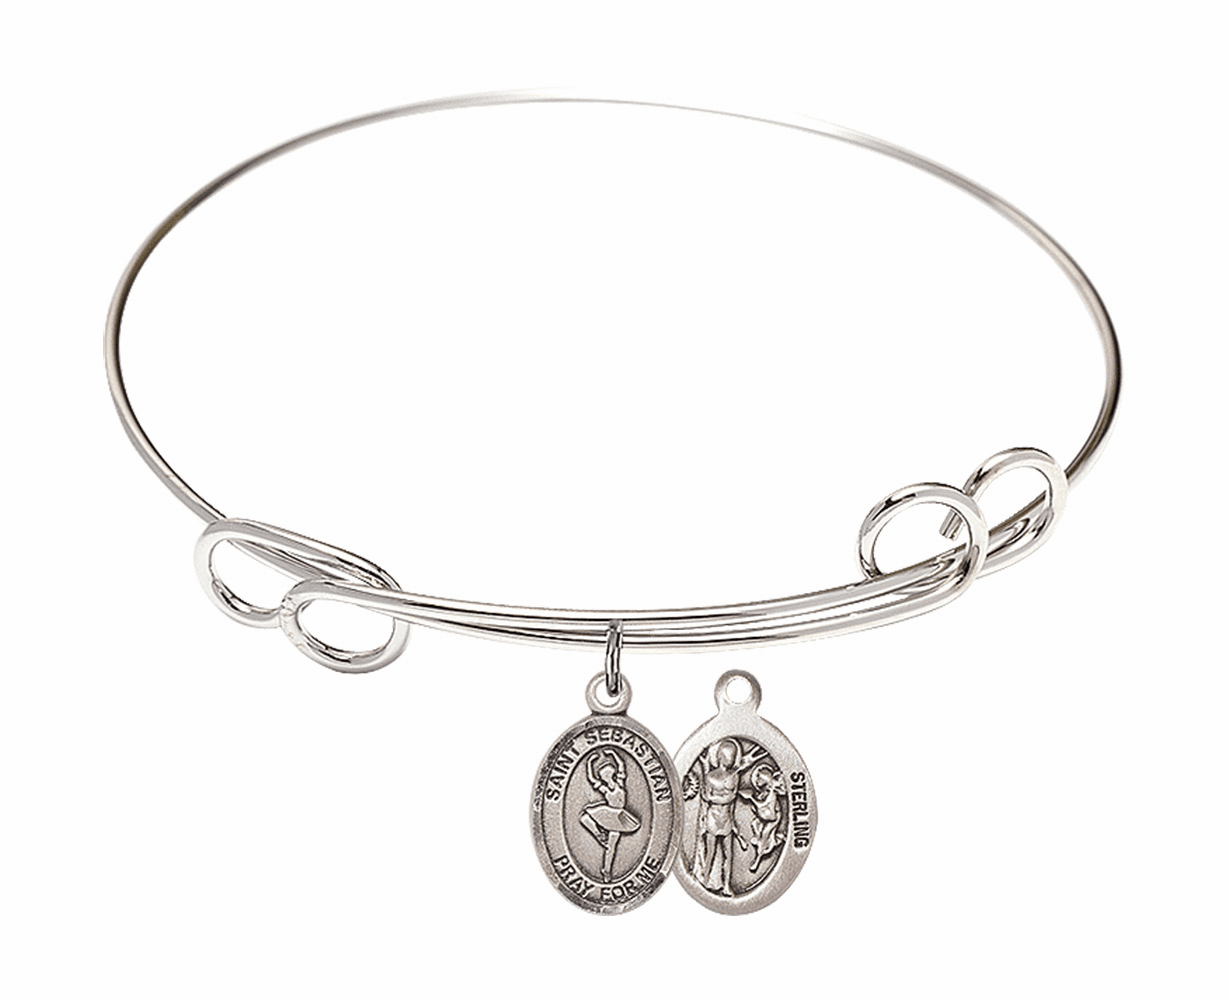 Round Loop St Sebastian Dance Bangle Charm Bracelet by Bliss